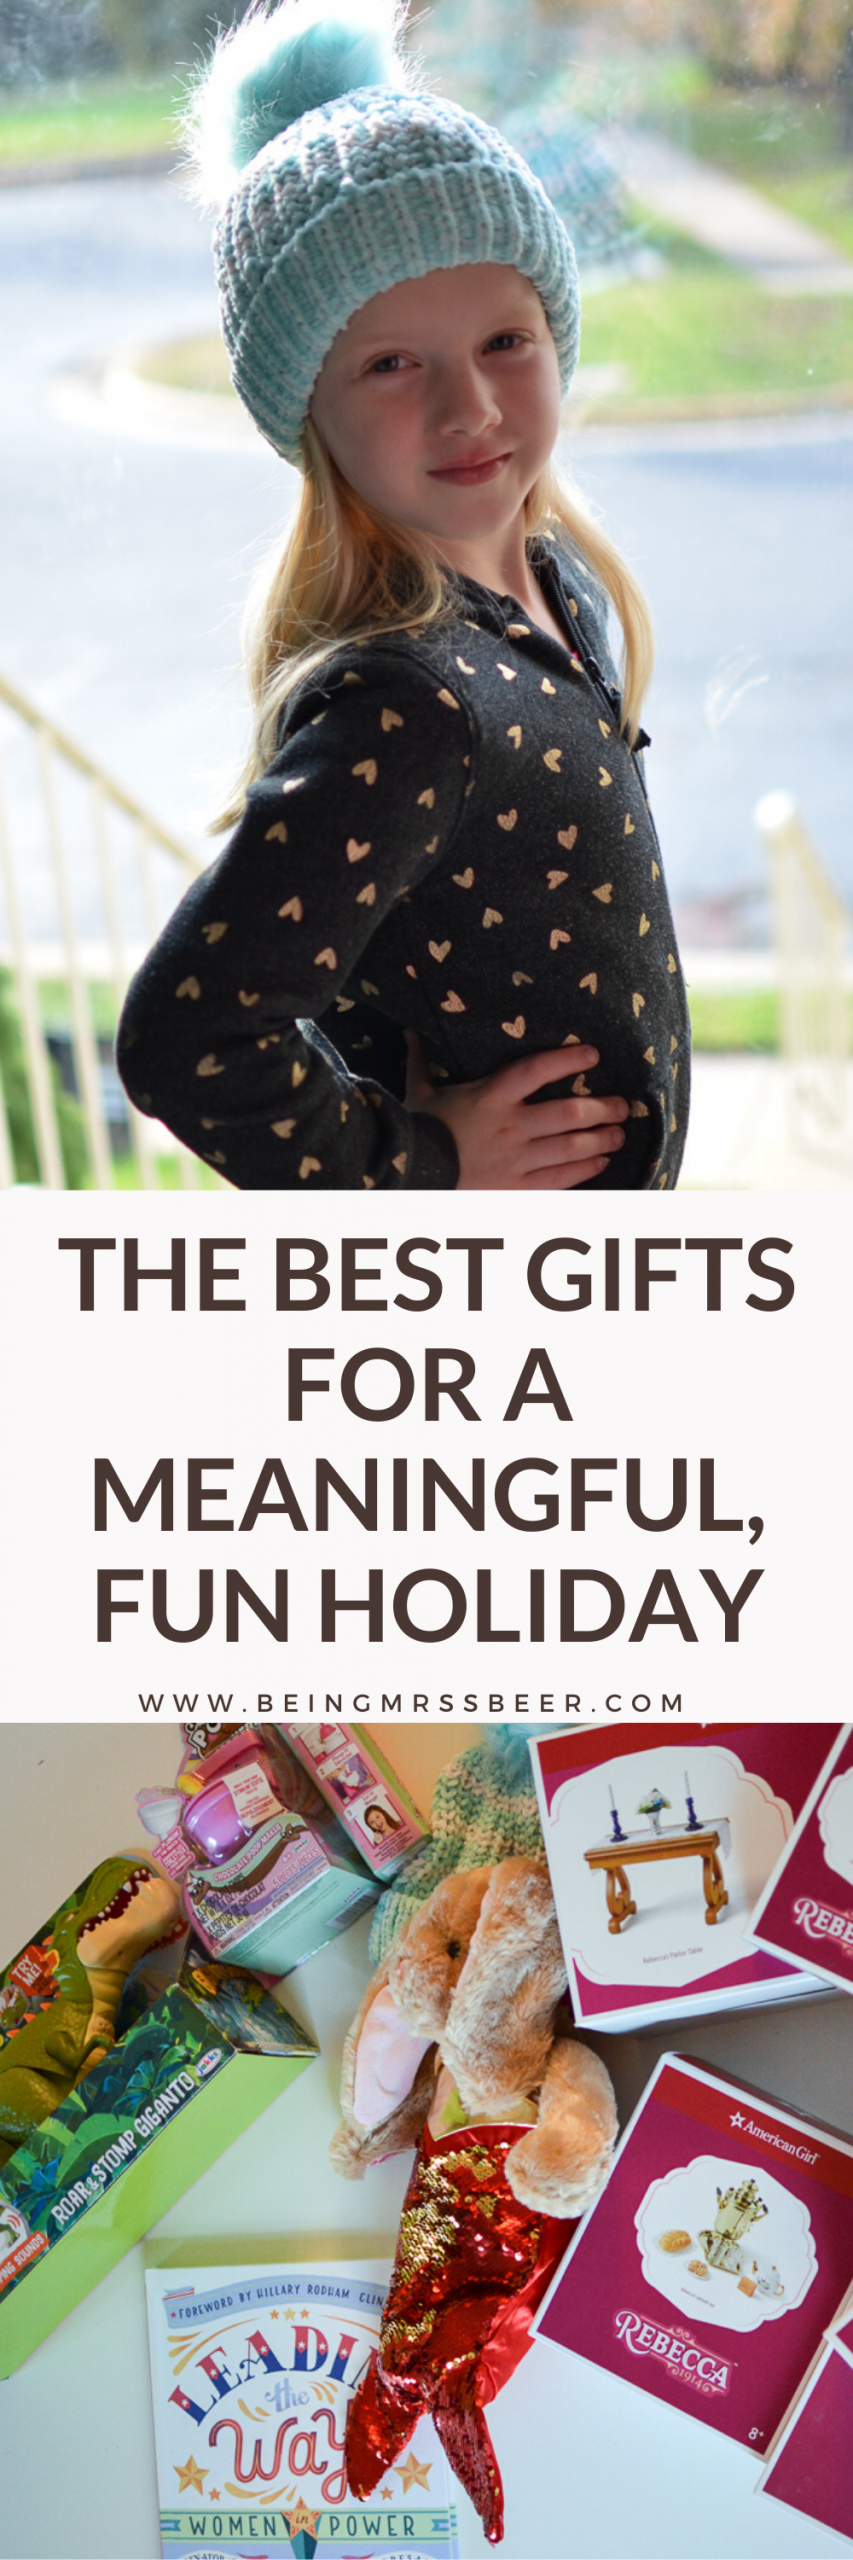 #AD Looking for the best gifts for a meaningful holiday season? Here are the best ideas to gift your girls, from the fun to the meaningful! #Gifts4KidsBBoxx